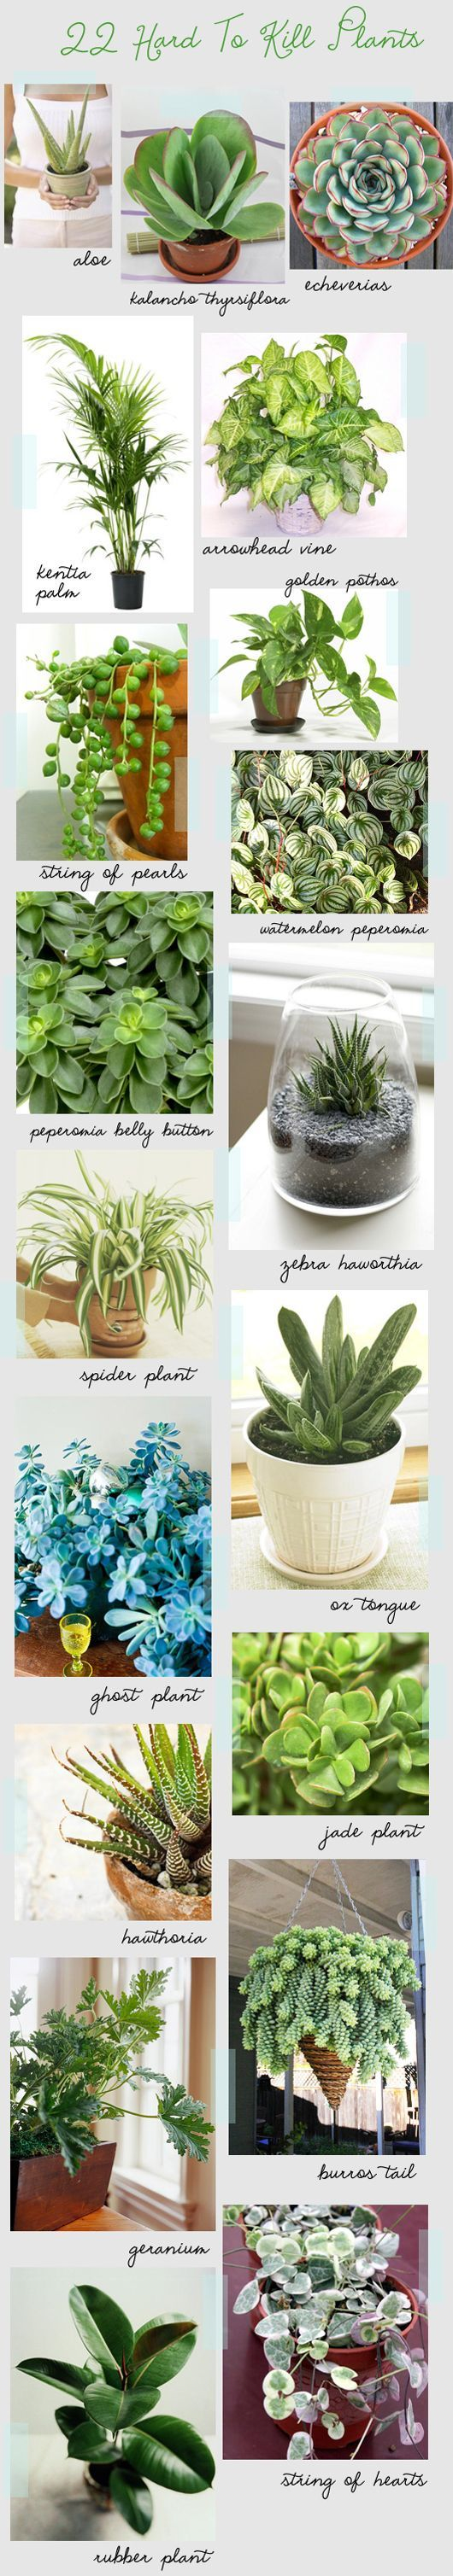 One thing we at Bneato do approve of you collecting in your home: plants! Here's some ideas for those without a green thumb.